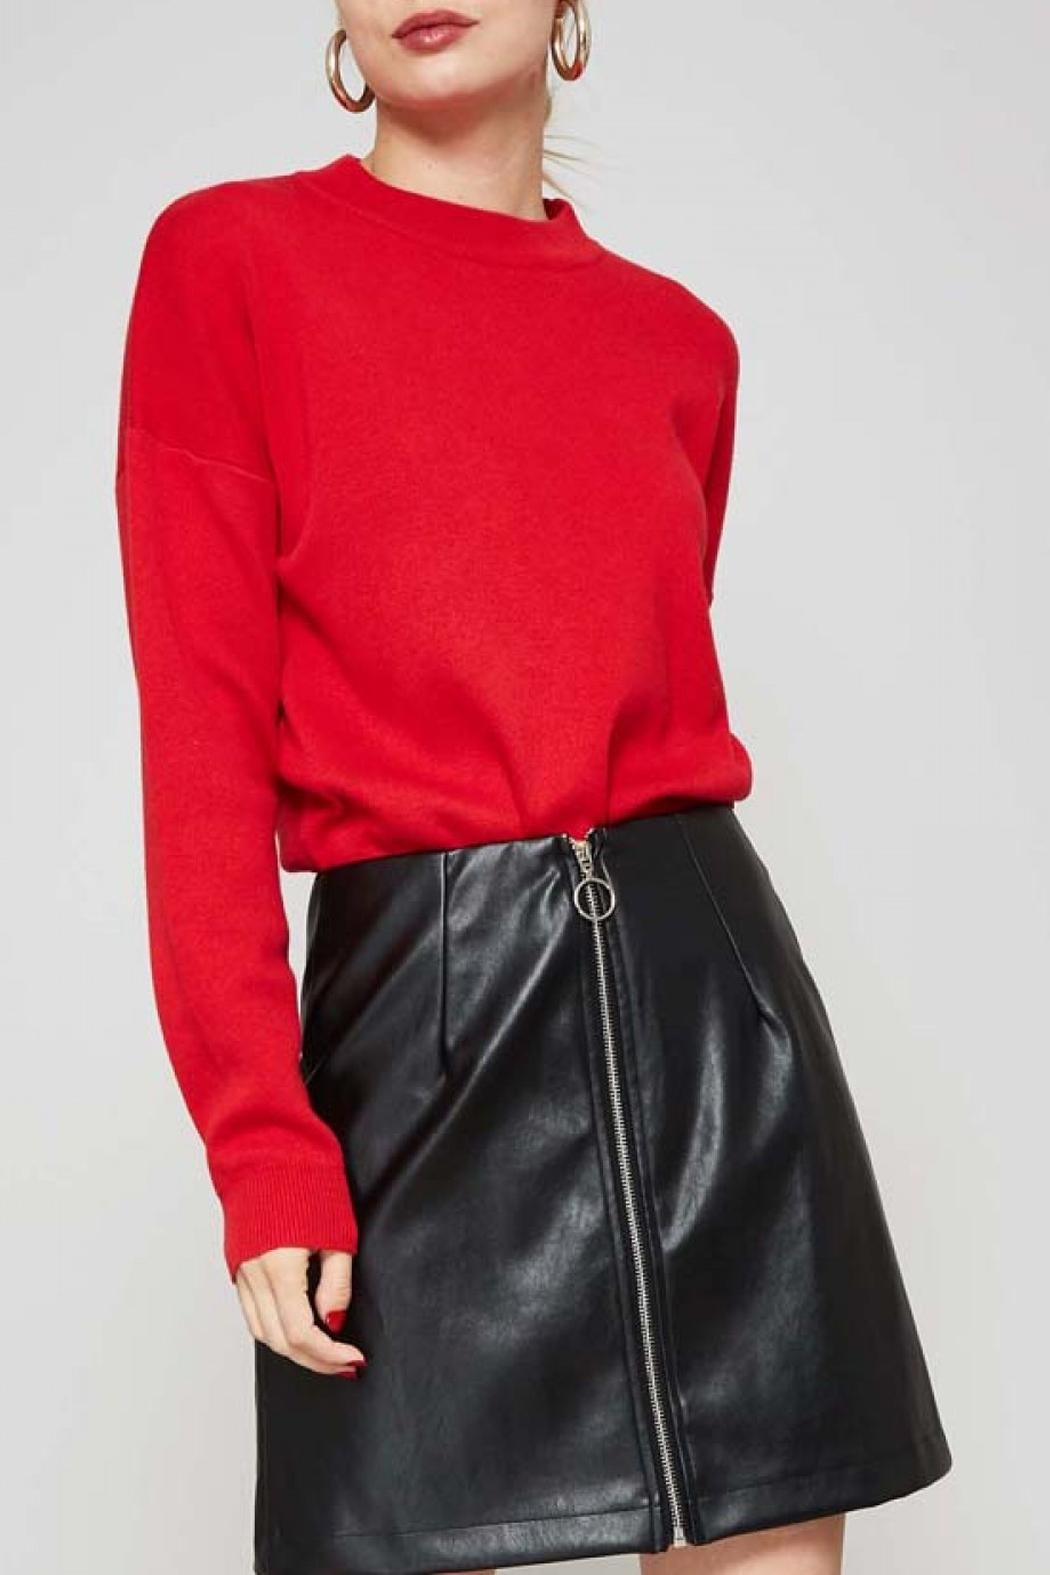 Promesa USA Red Heart Sweater - Back Cropped Image